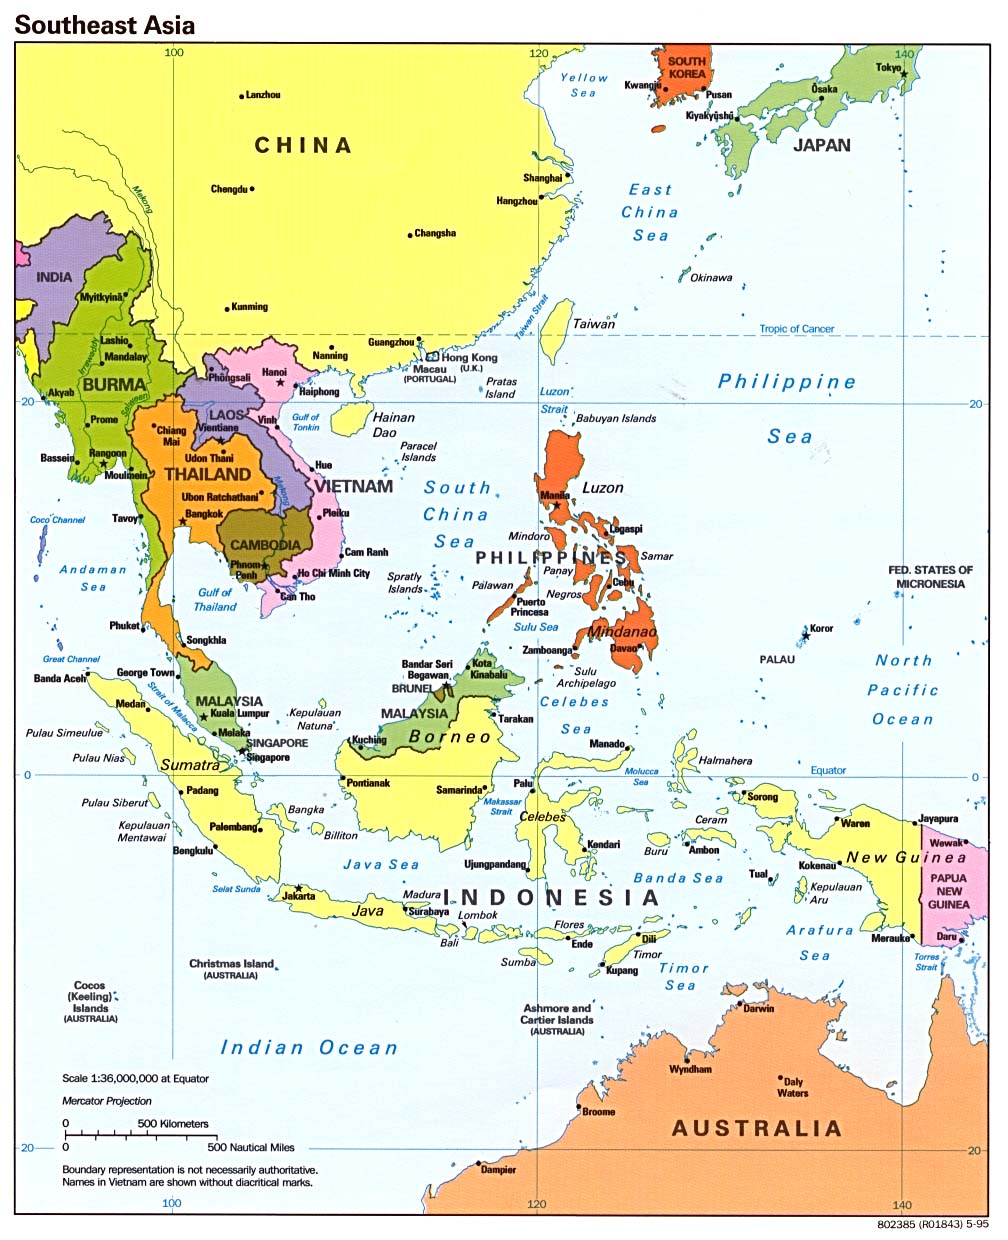 Southeast Asia Political Map 1995 Full size